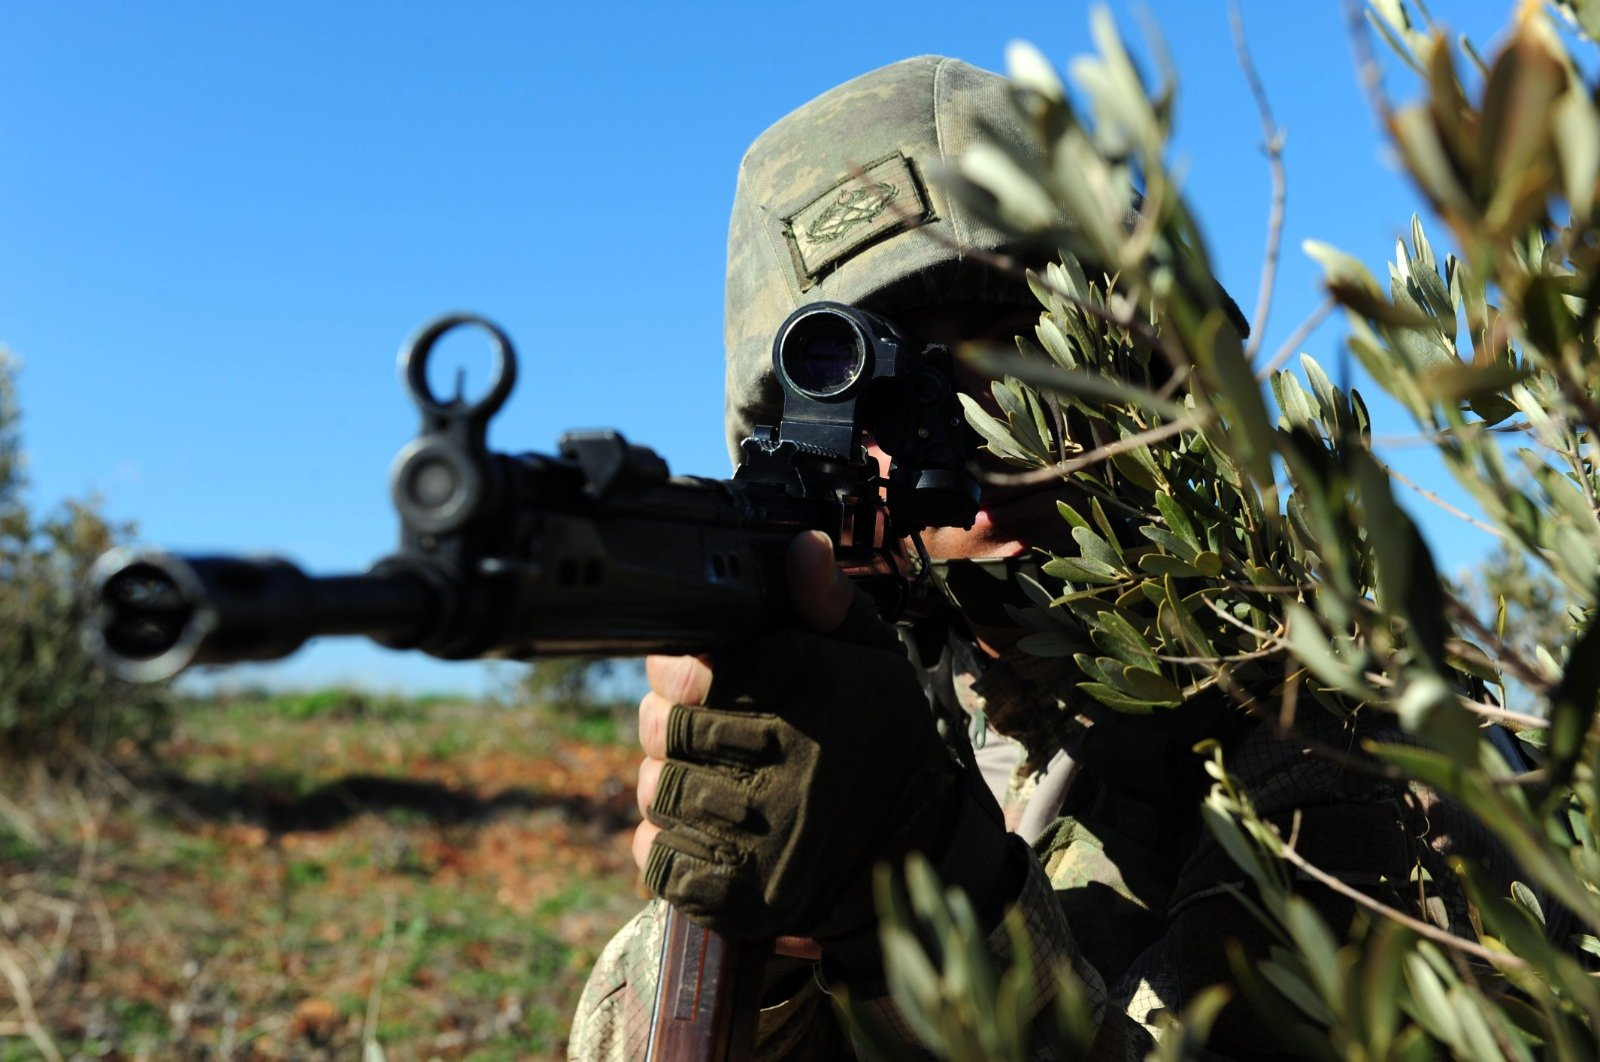 A Turkish soldier participates in a counterterrorism operation against the PKK in this undated file photo. (Defense Ministry handout)